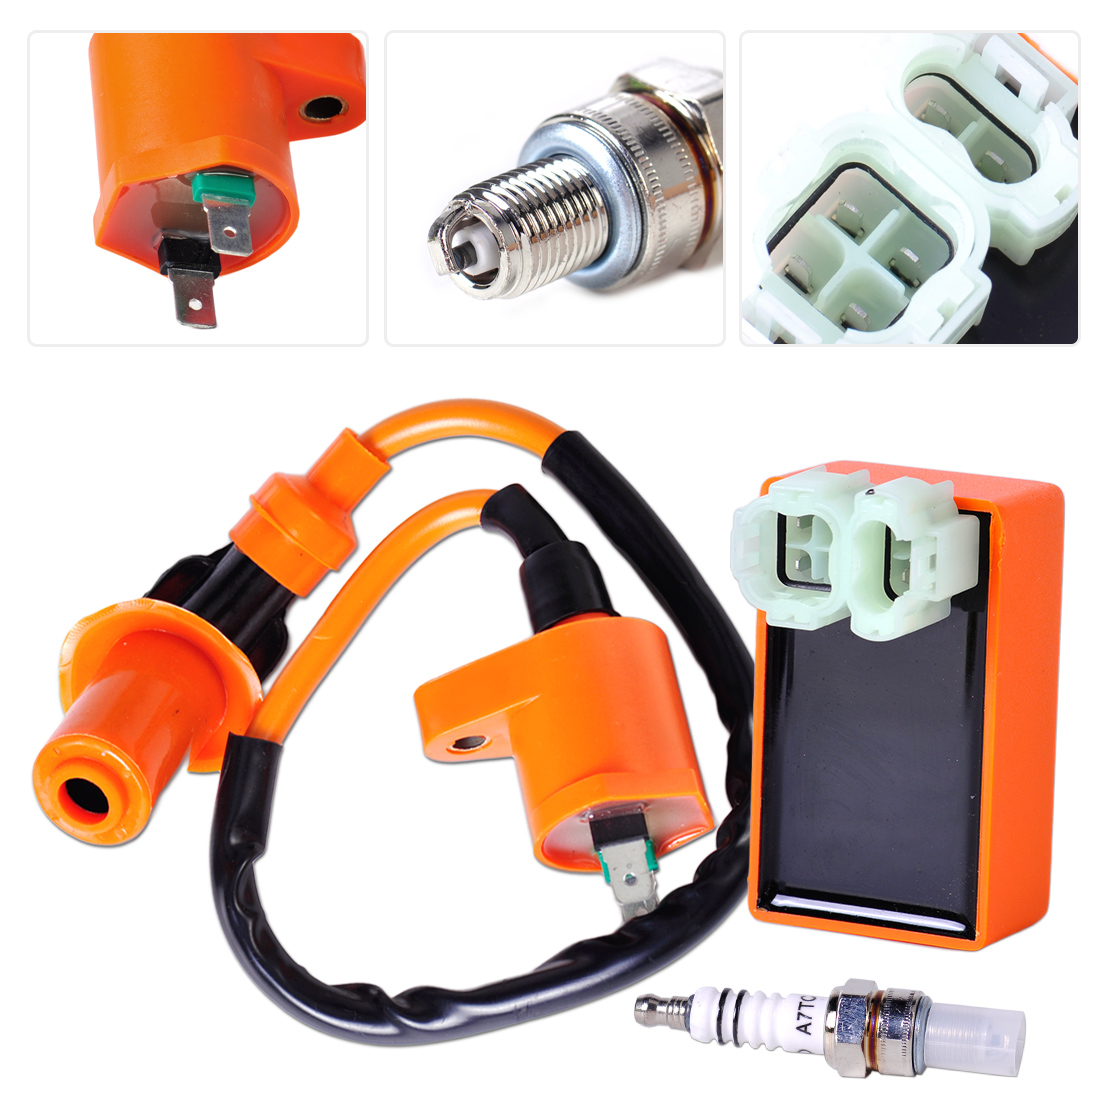 DWCX Motorcycle Racing Ignition Coil +Racing Performance CDI + Spark Plug for GY6 50cc 150cc Scooter ATV Go Kart Moped Dirt bike